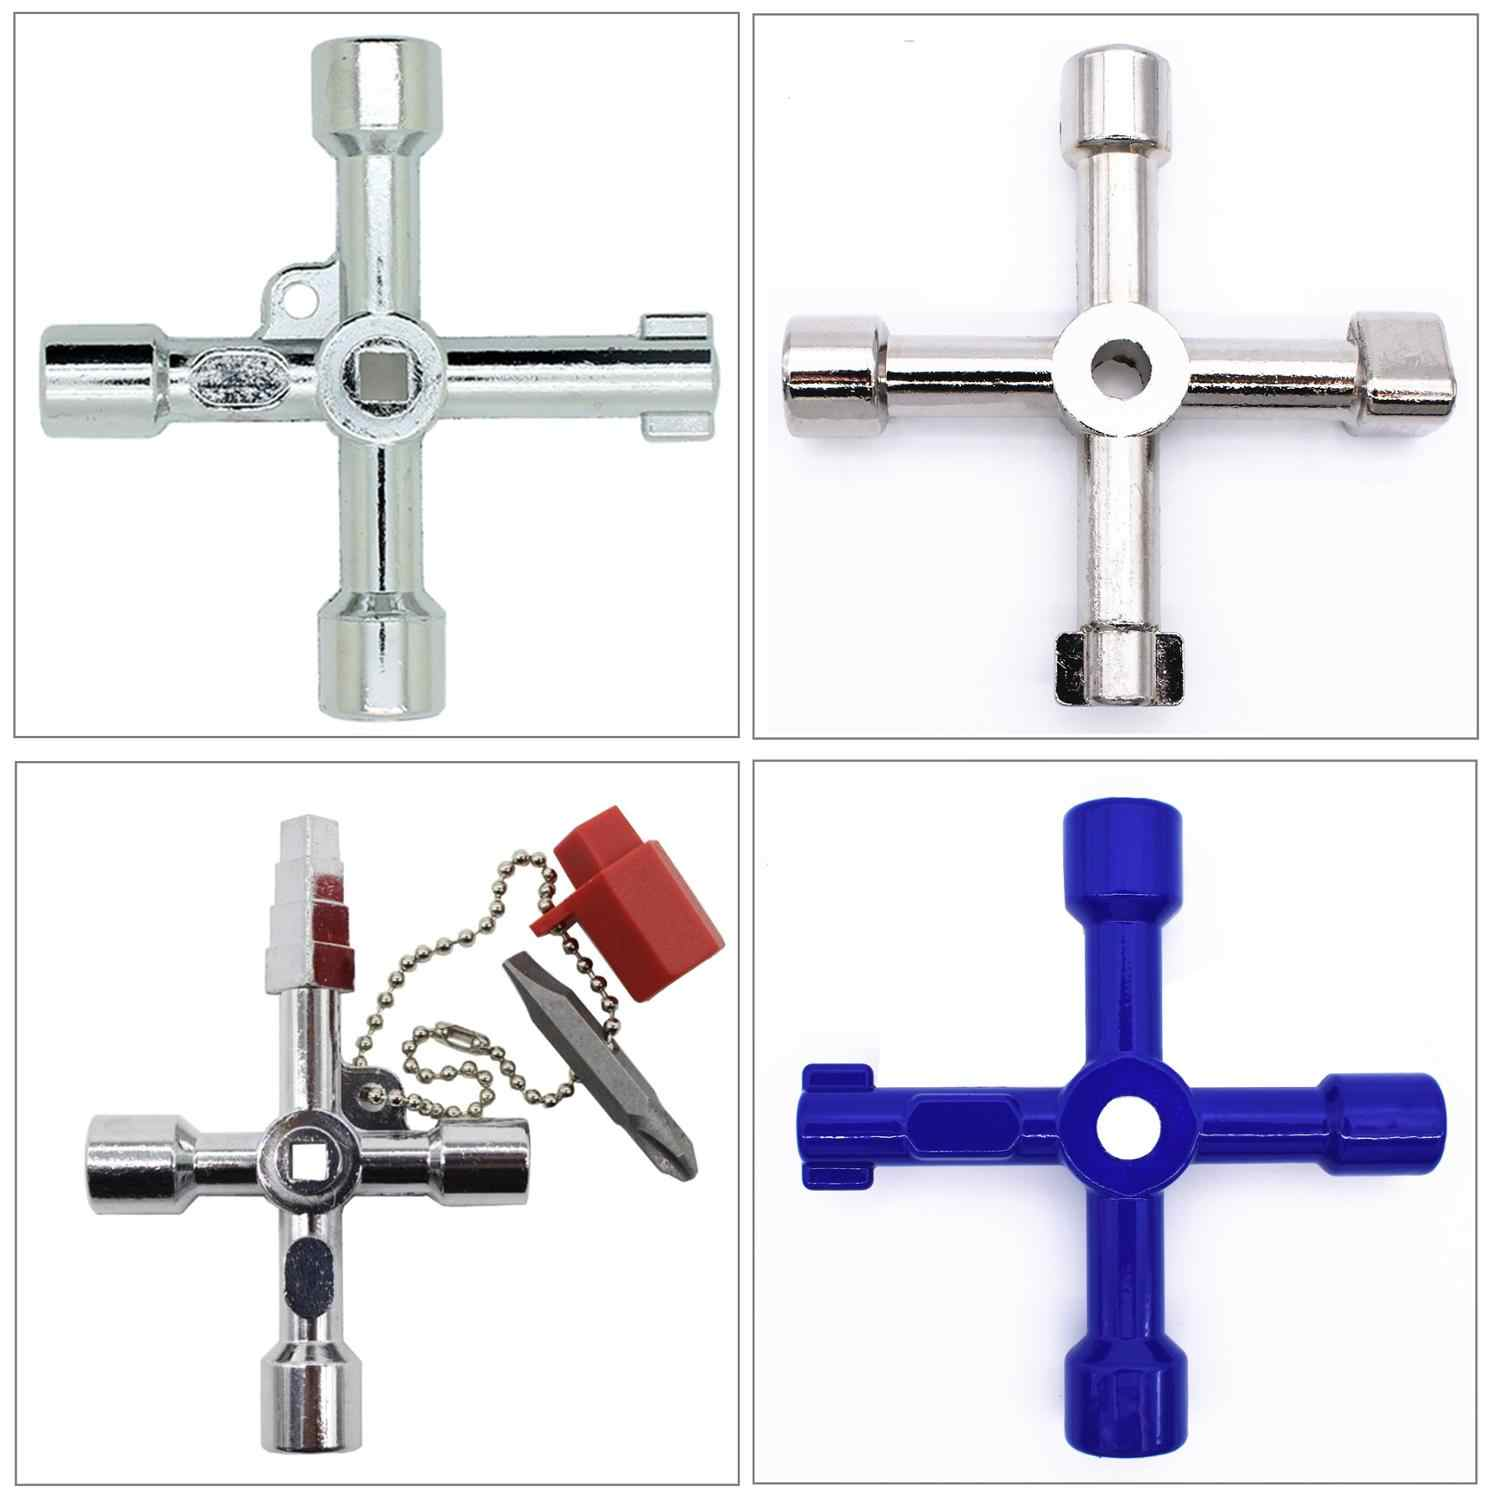 Multi-Functional Universal Plumbers Electricians Tools for Elevator 4 Way Cross-Key with Bit Electrical Cupboard Box